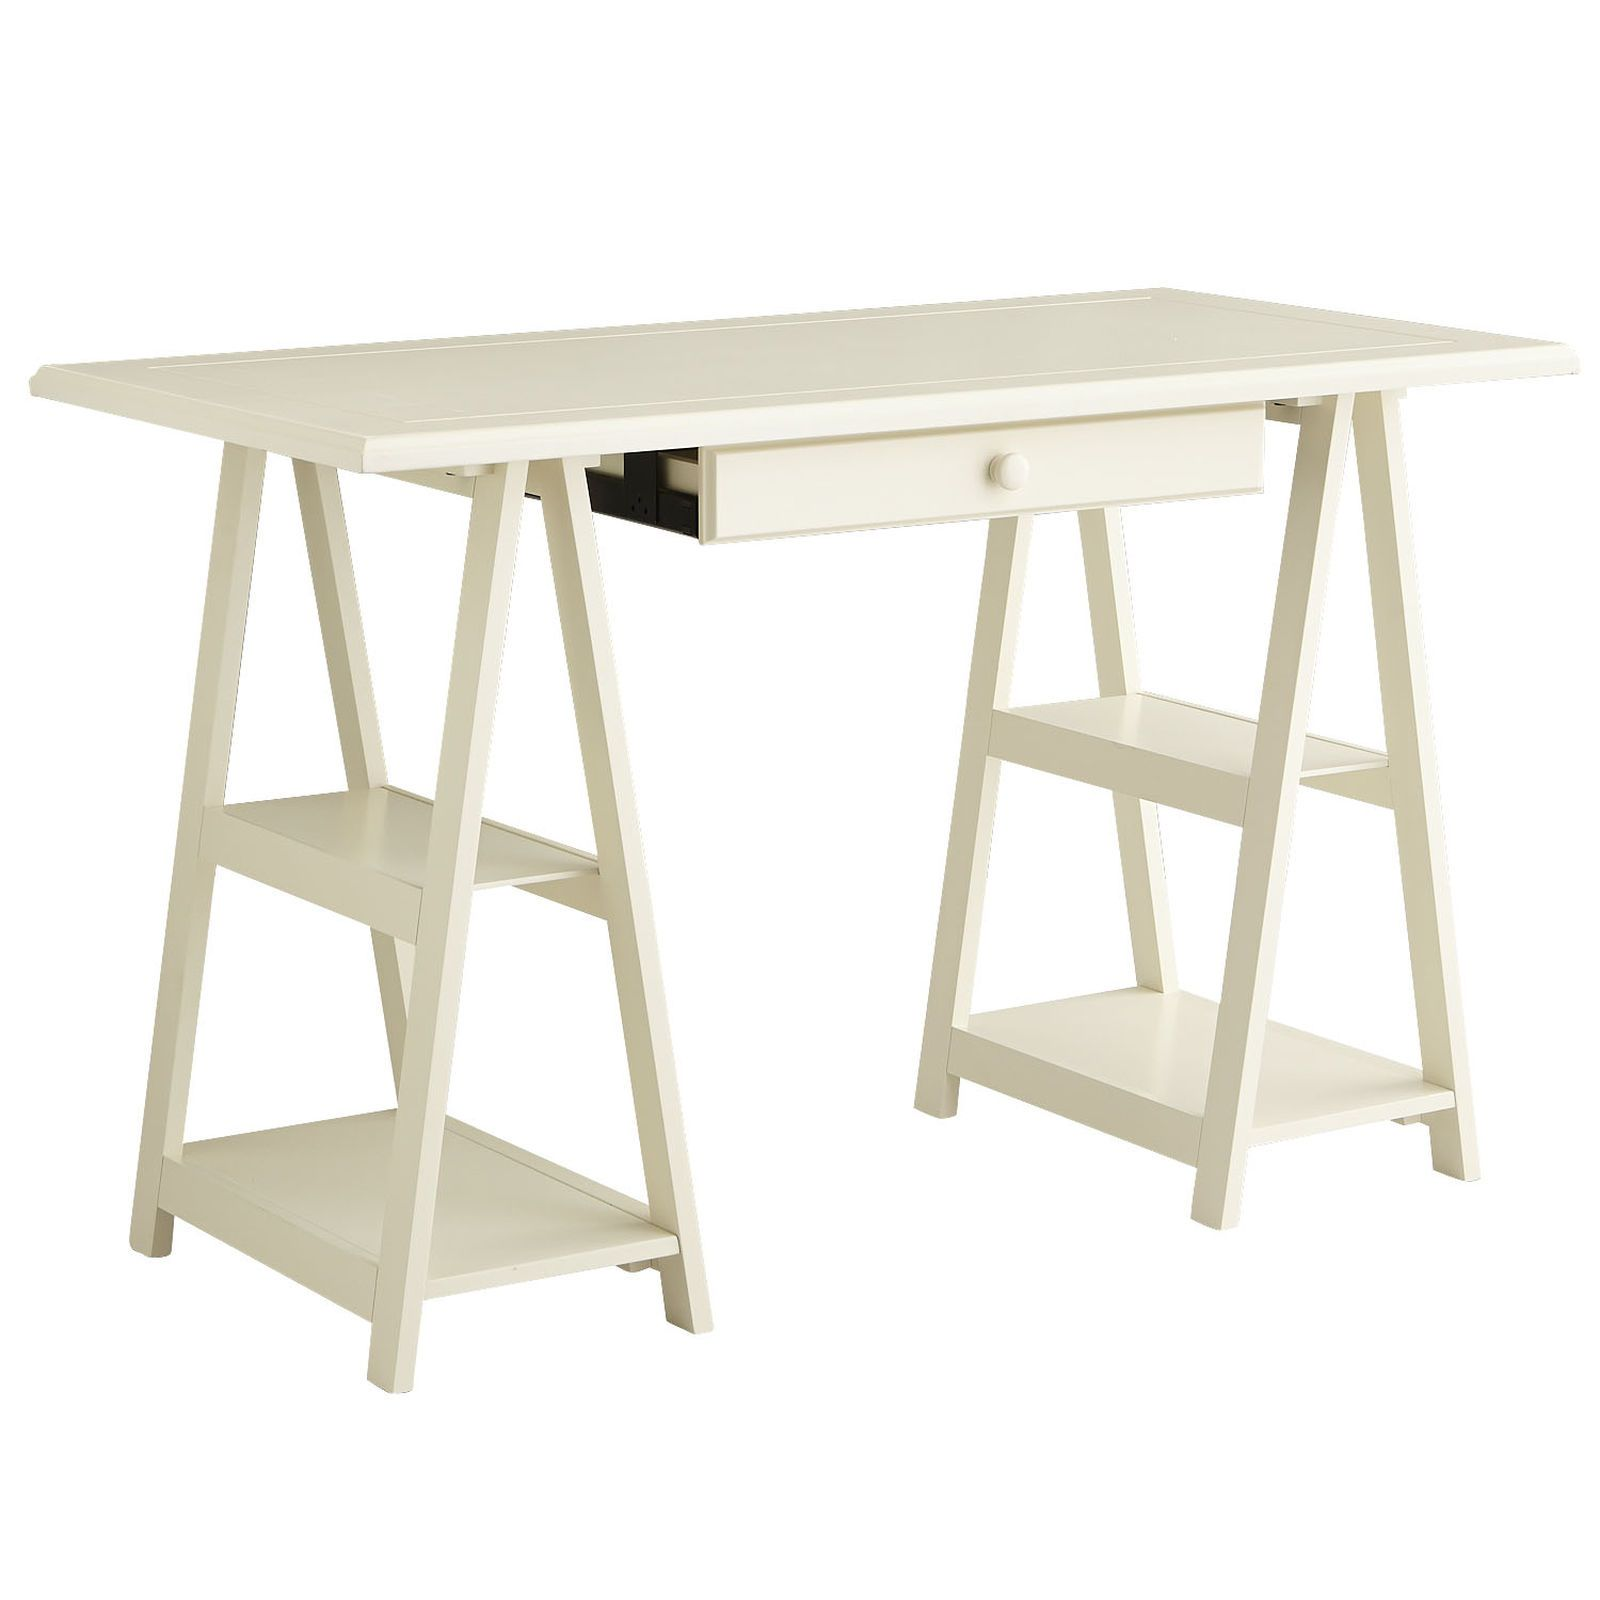 A cut above the standard sawhorse desk cavaletto maintains classic